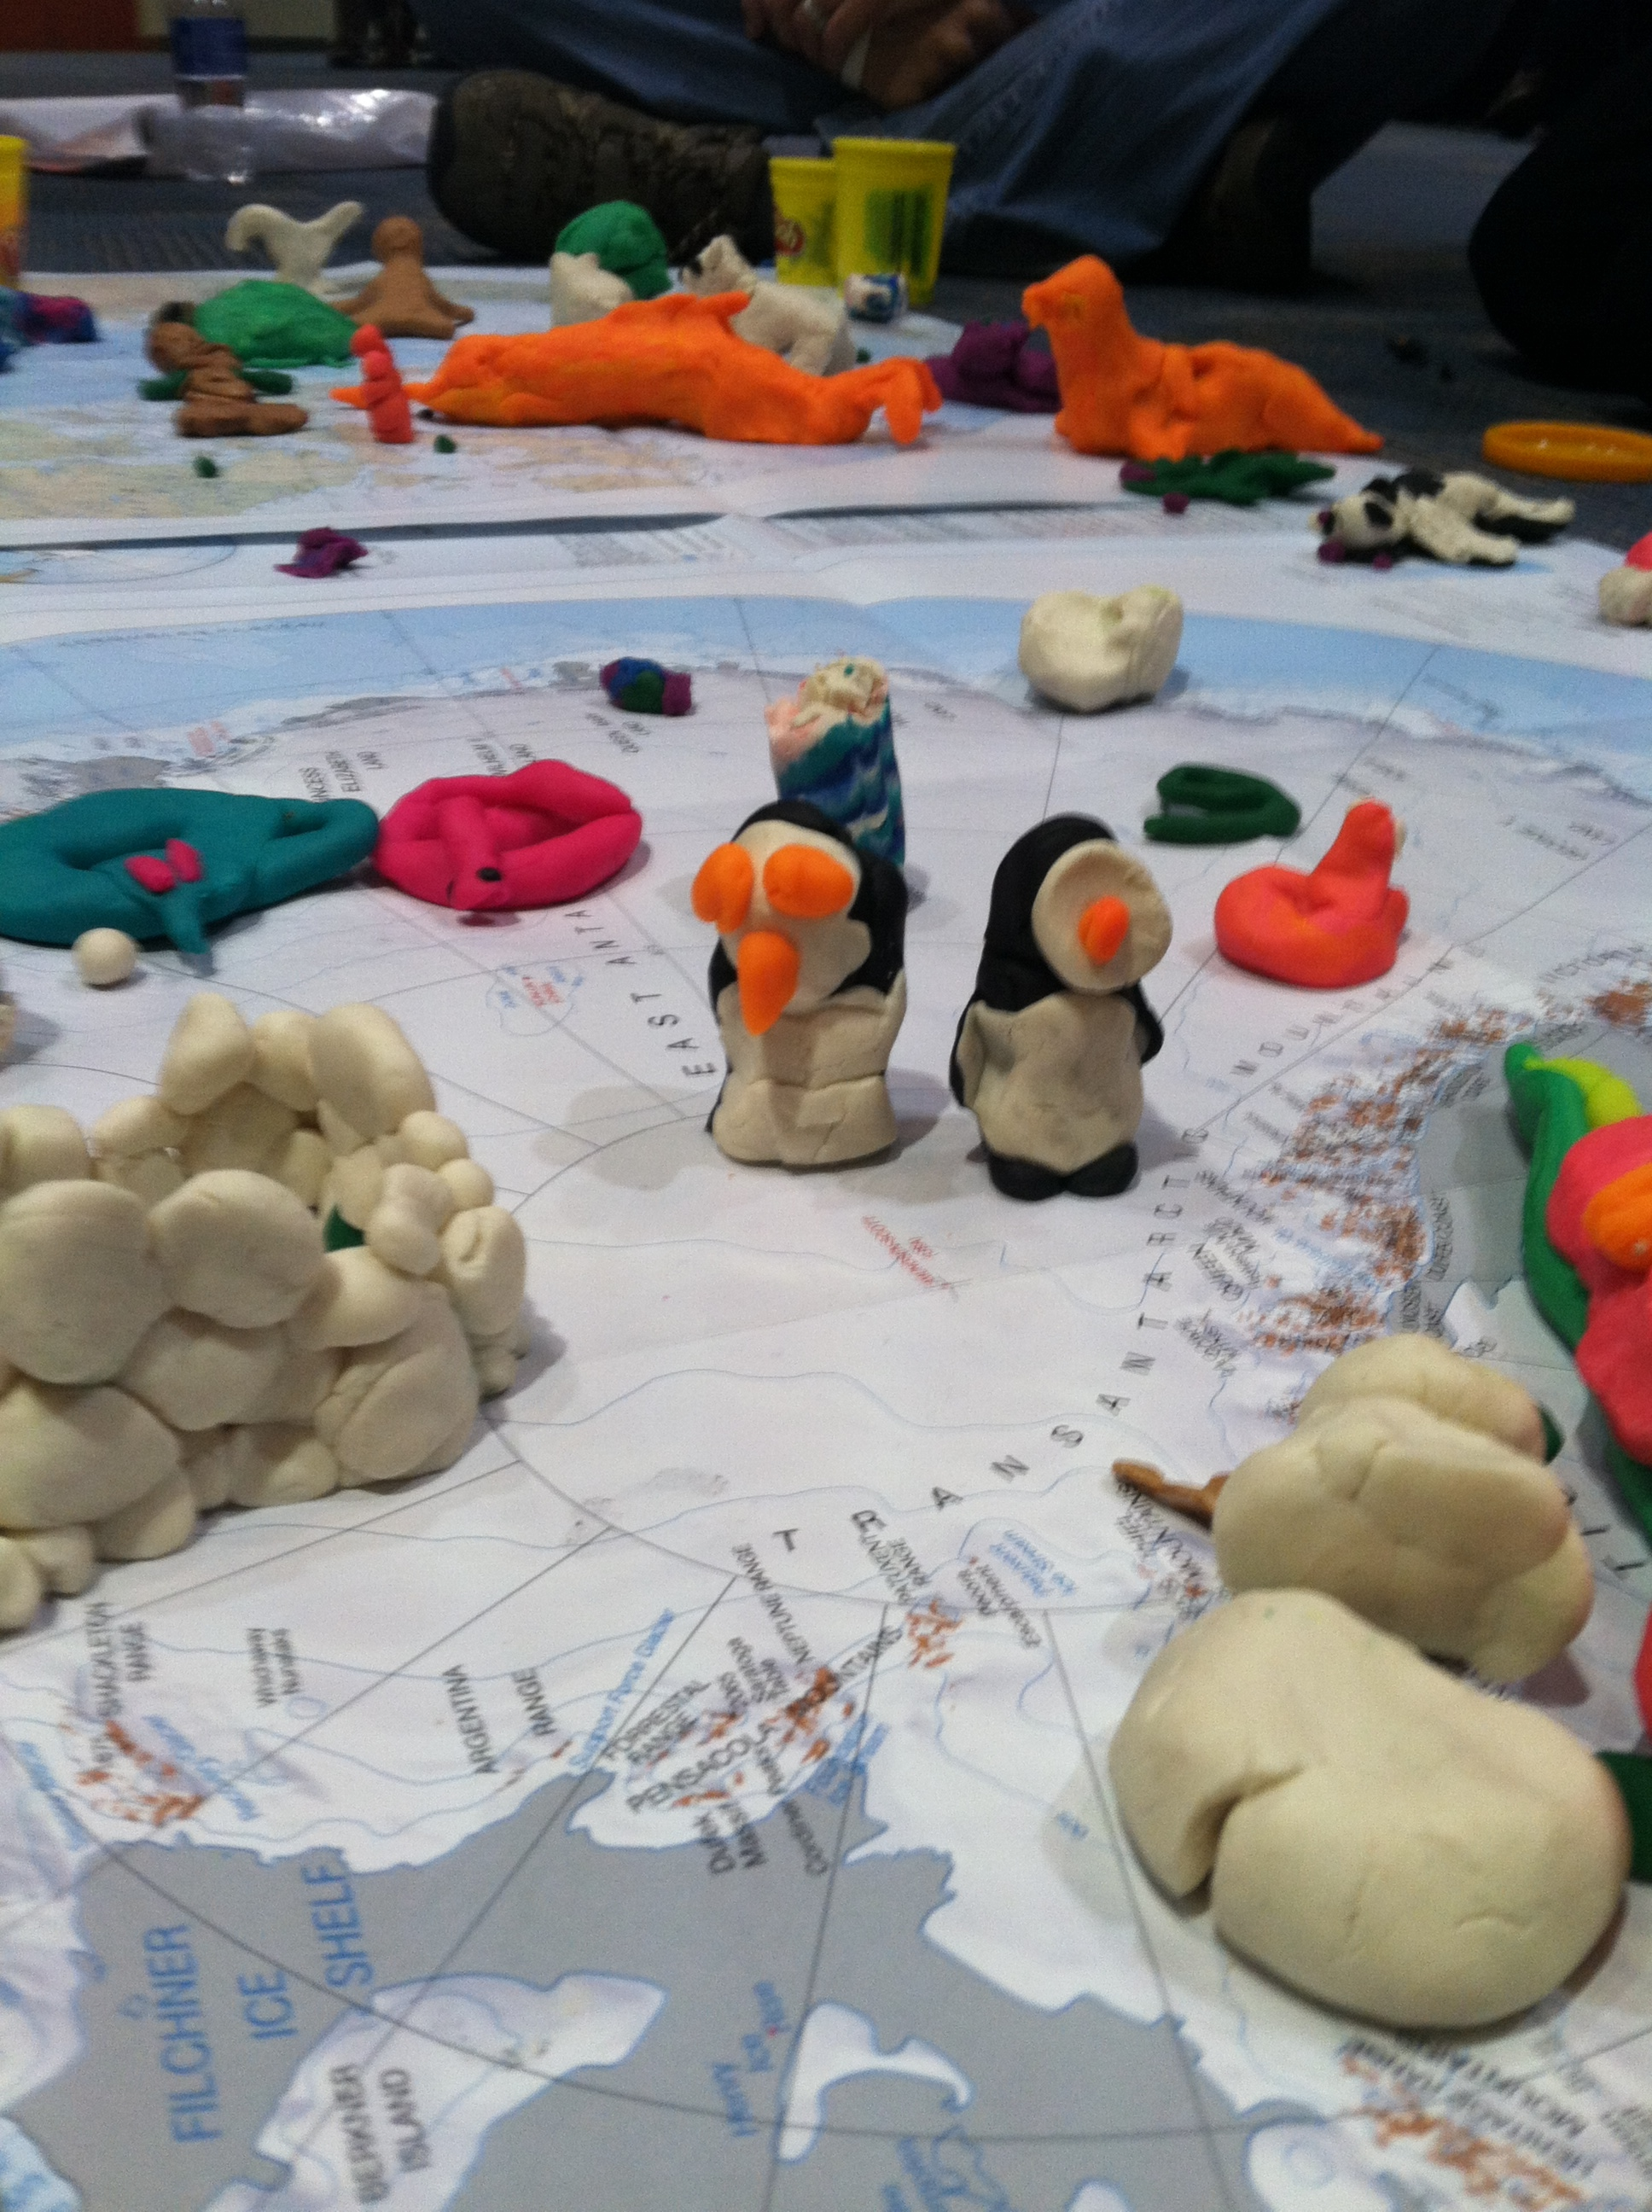 Polar Play-Doh Animals. Photo: S. Bartholow